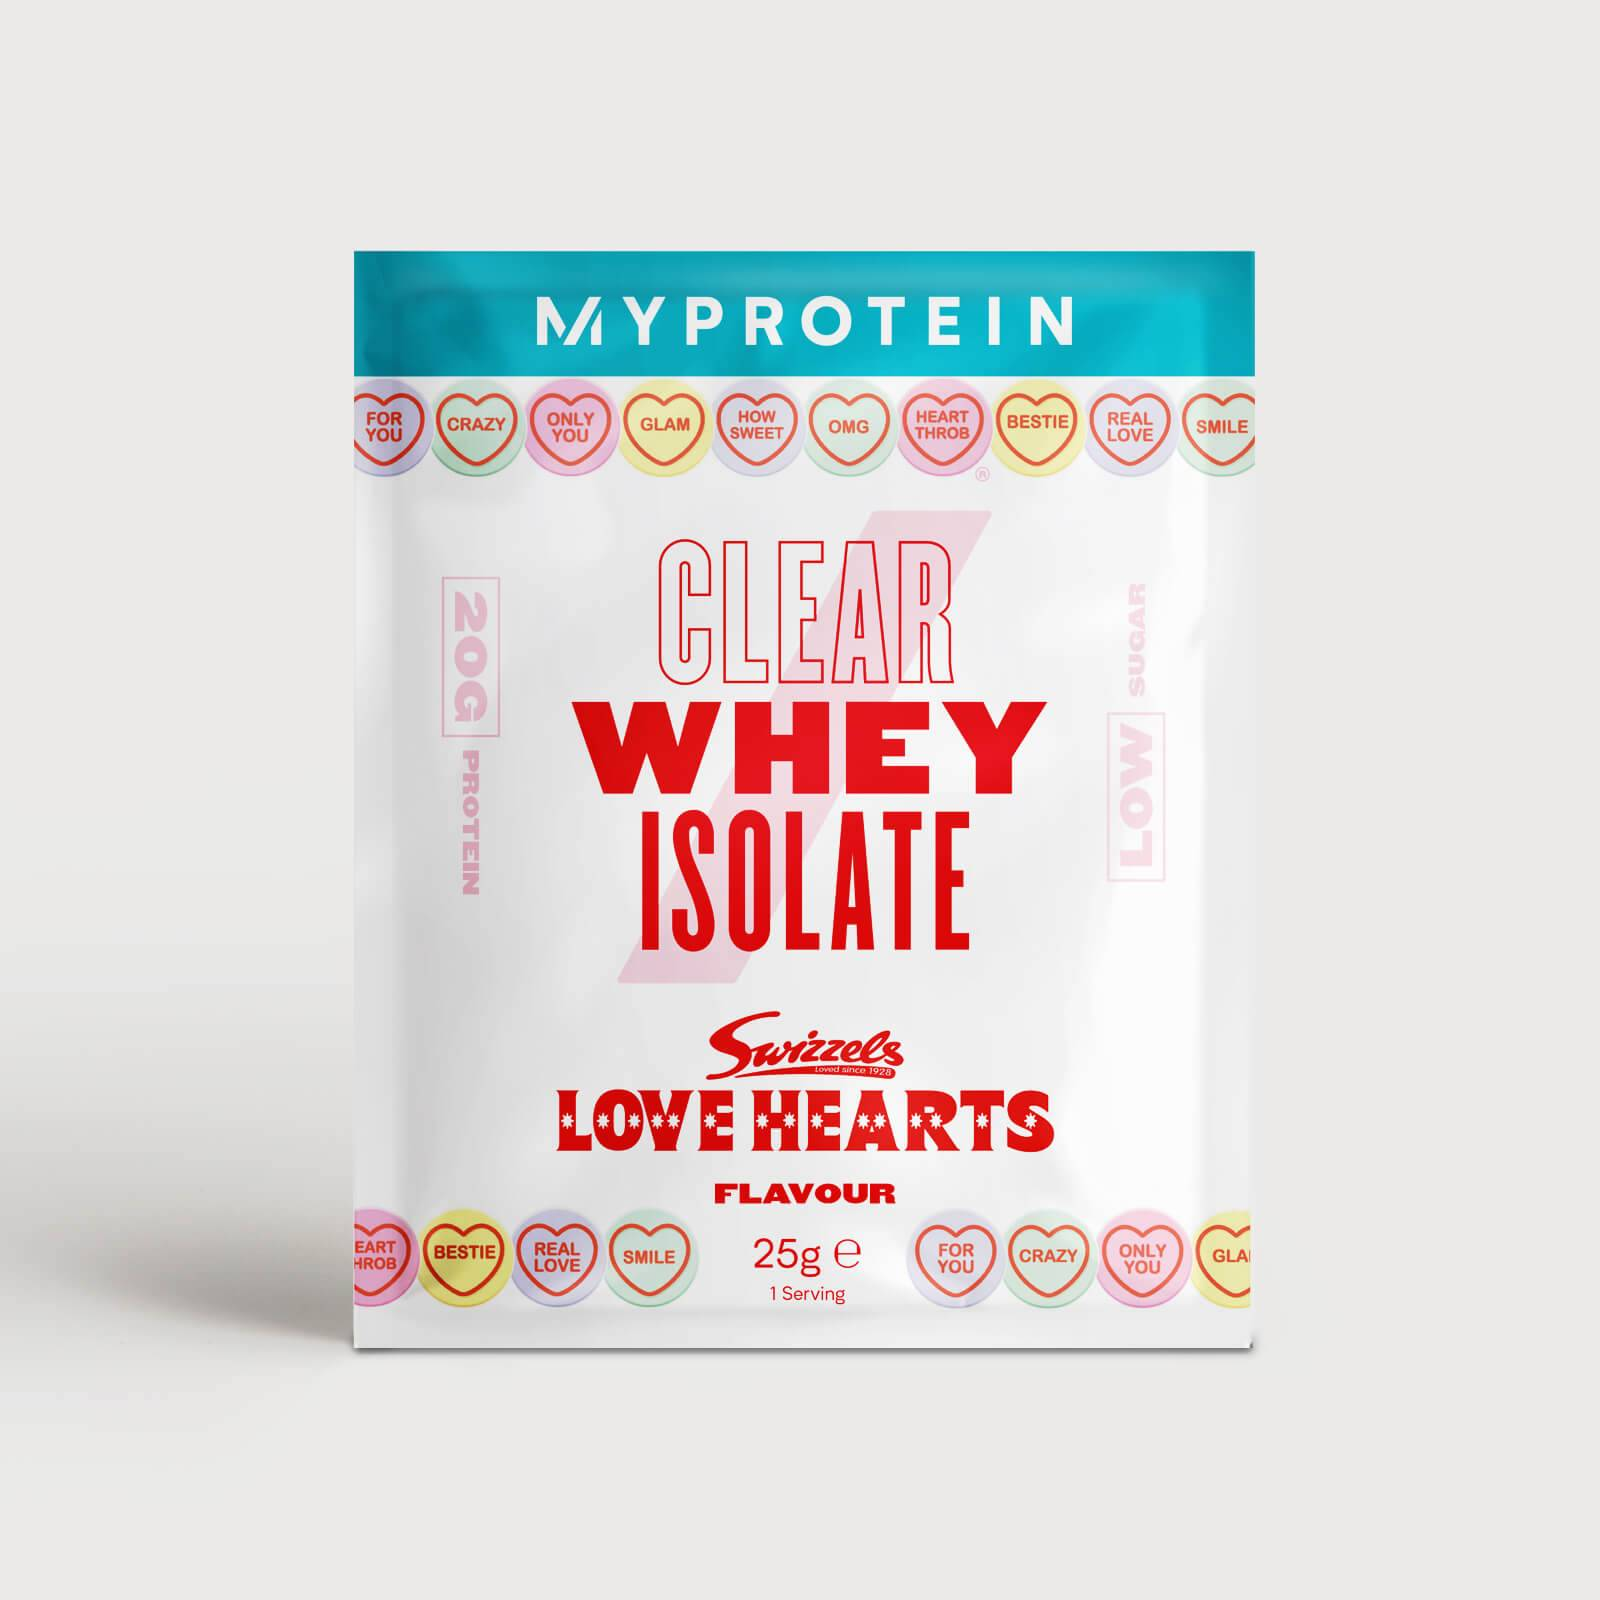 Myprotein Clear Whey Isolate – Swizzels Edition (Sample) - Love Hearts